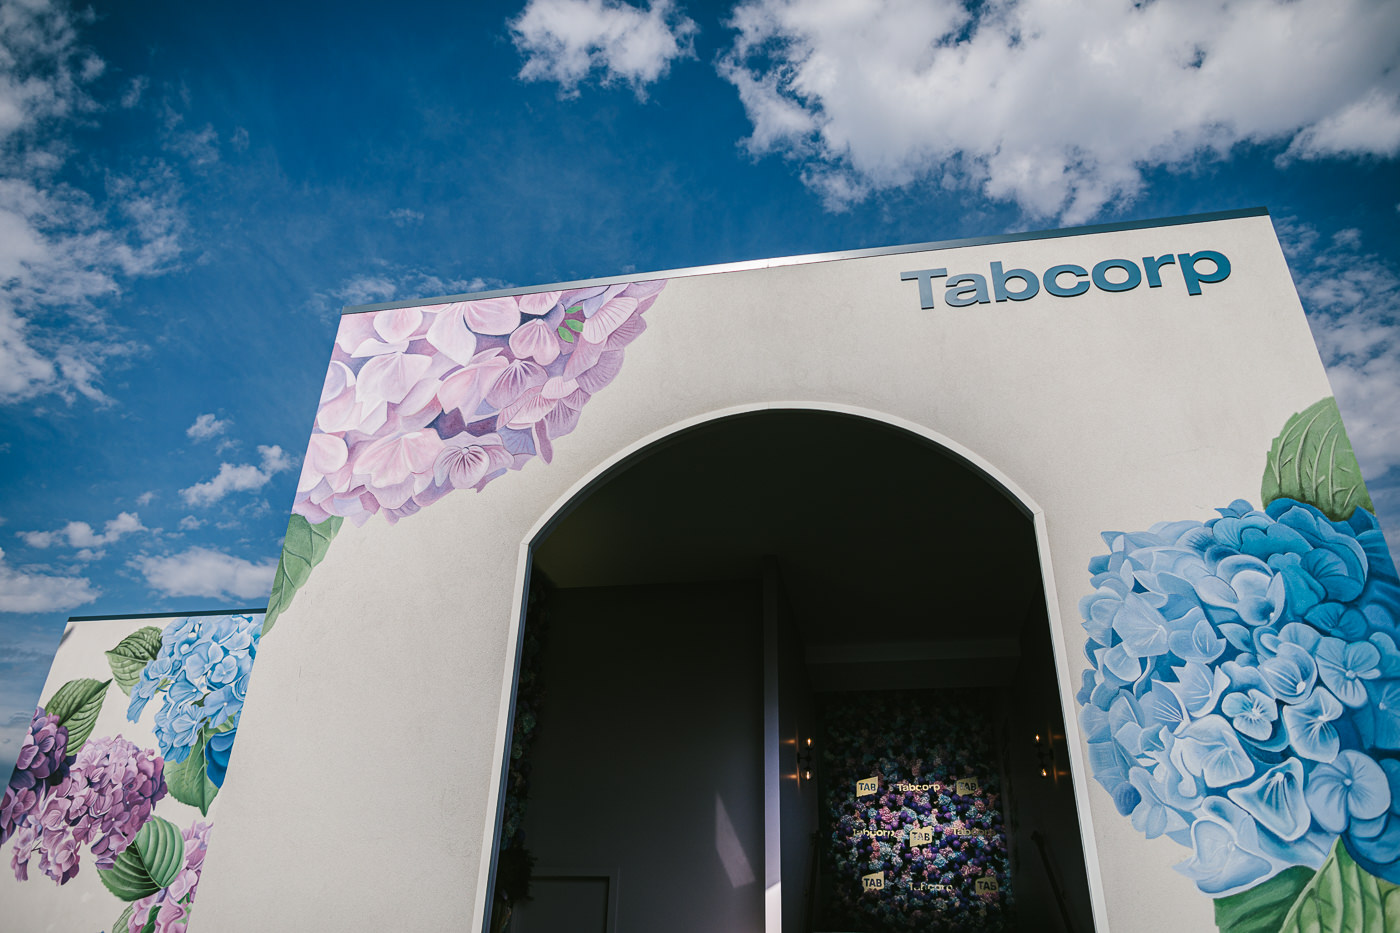 Tabcorp Marquee in the Birdcage 2019